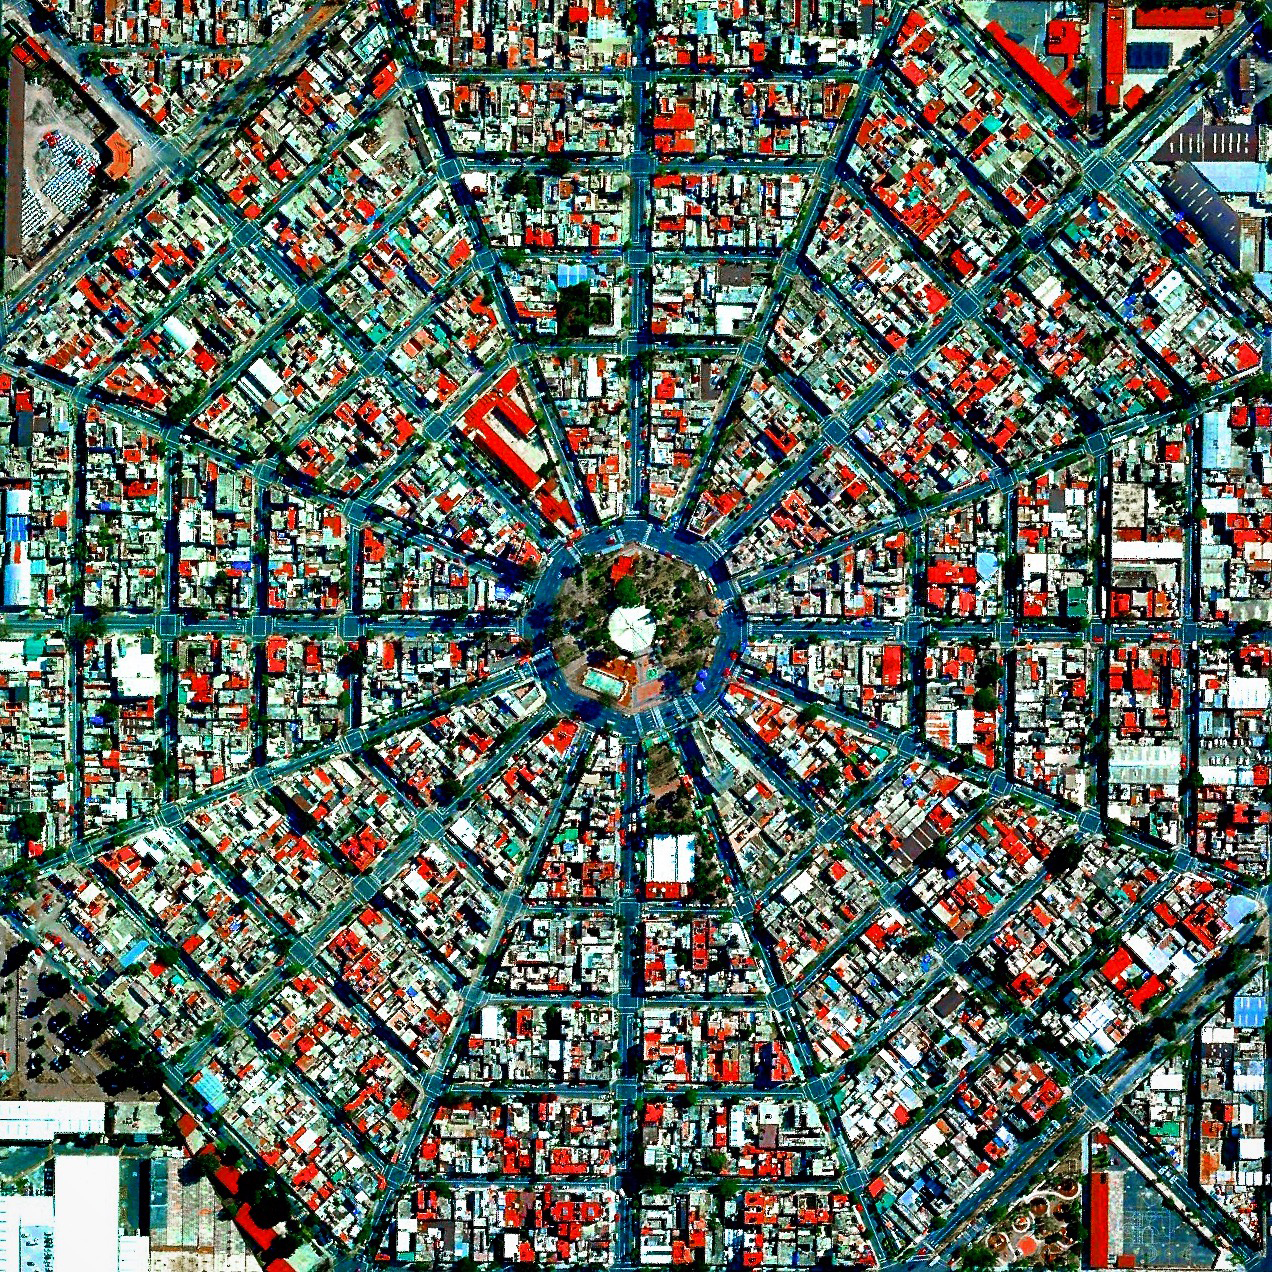 """Radiating streets surround the Plaza Del Ejecutivo in the Venustiano Carranza district of Mexico City, Mexico. This district — which is home to more than 430,000 people — contains three of Mexico City's large traditional markets, including La Merced, Mercado de Sonora, and Mercado Jamaica.  19°25'11.6""""N, 99°05'16.9""""W  Source imagery: DigitalGlobe"""